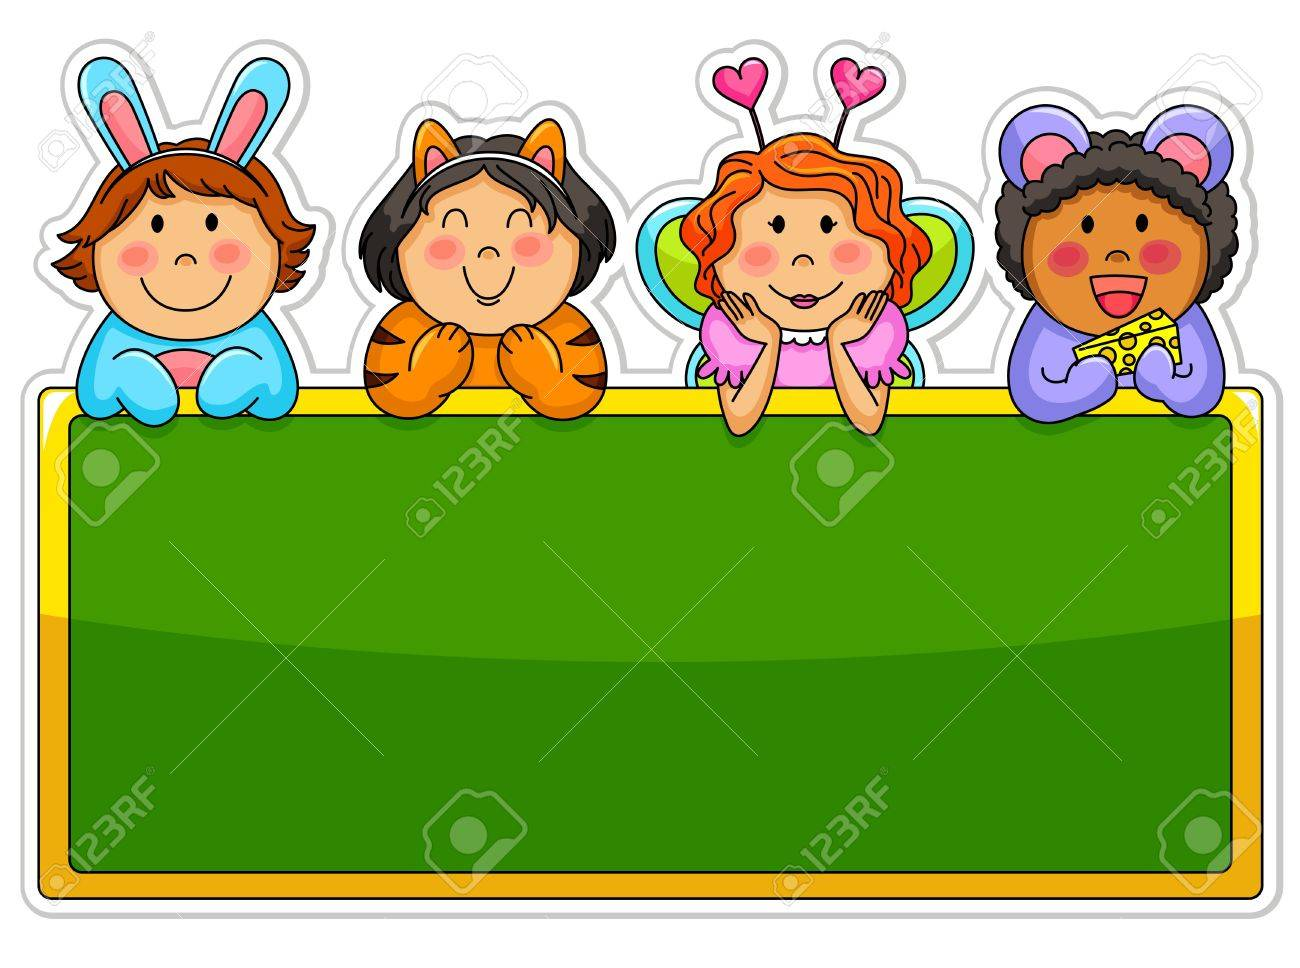 Kids wearing costumes leaning over a blank blackboard Stock Vector - 16525620